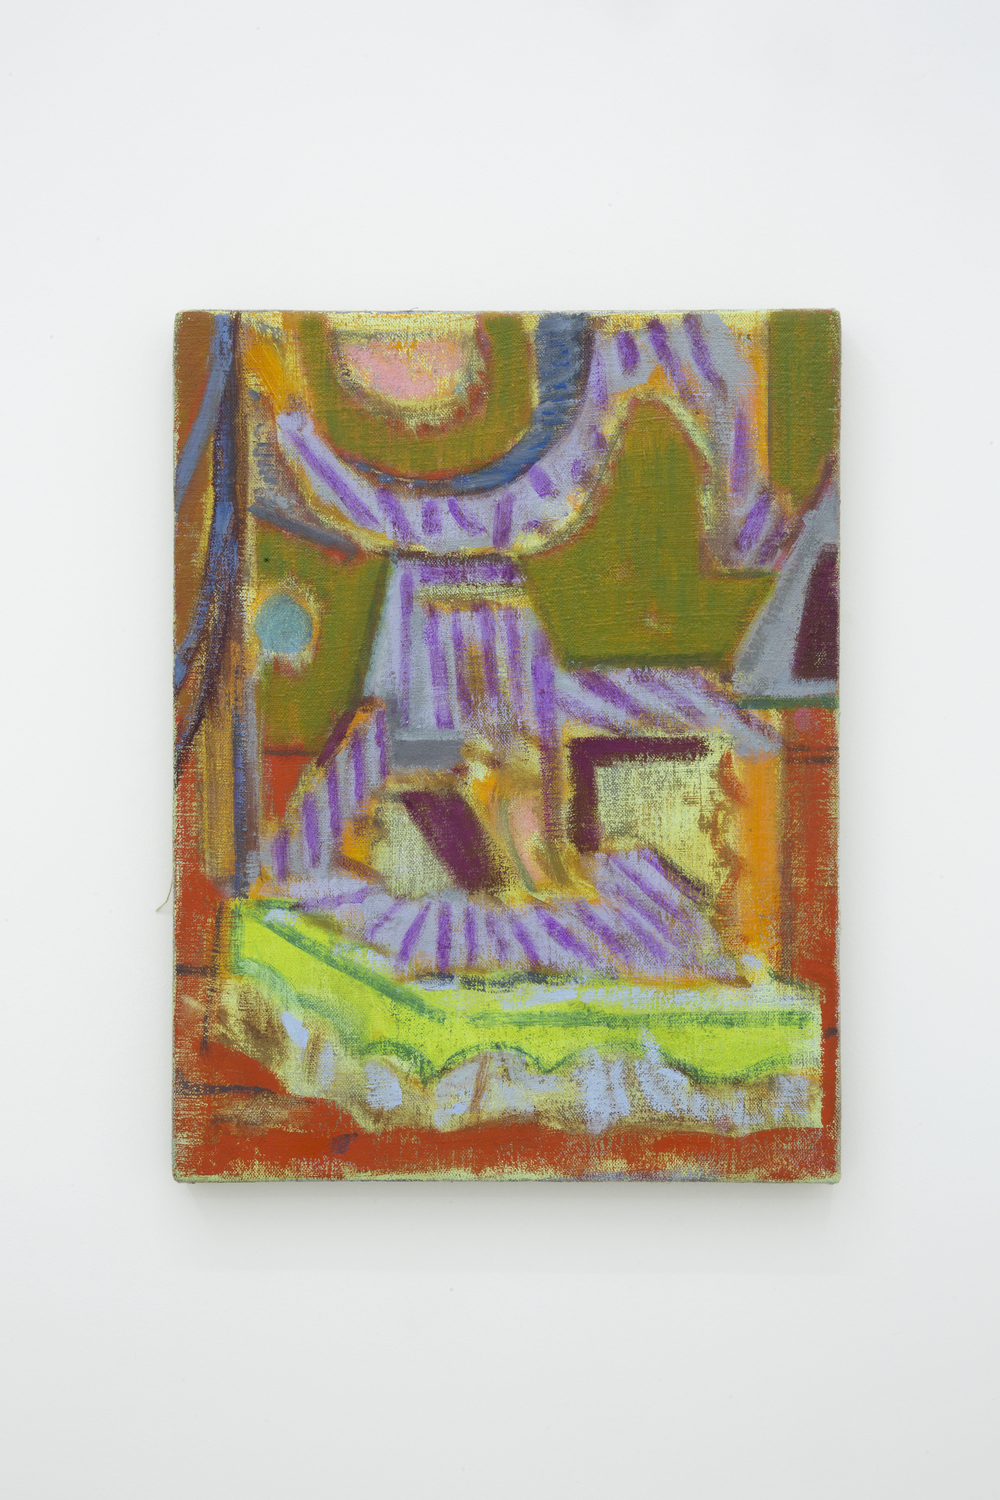 Michael Berryhill, untitled. Oil on linen 16 x 12 inches (40 x 30 cm)